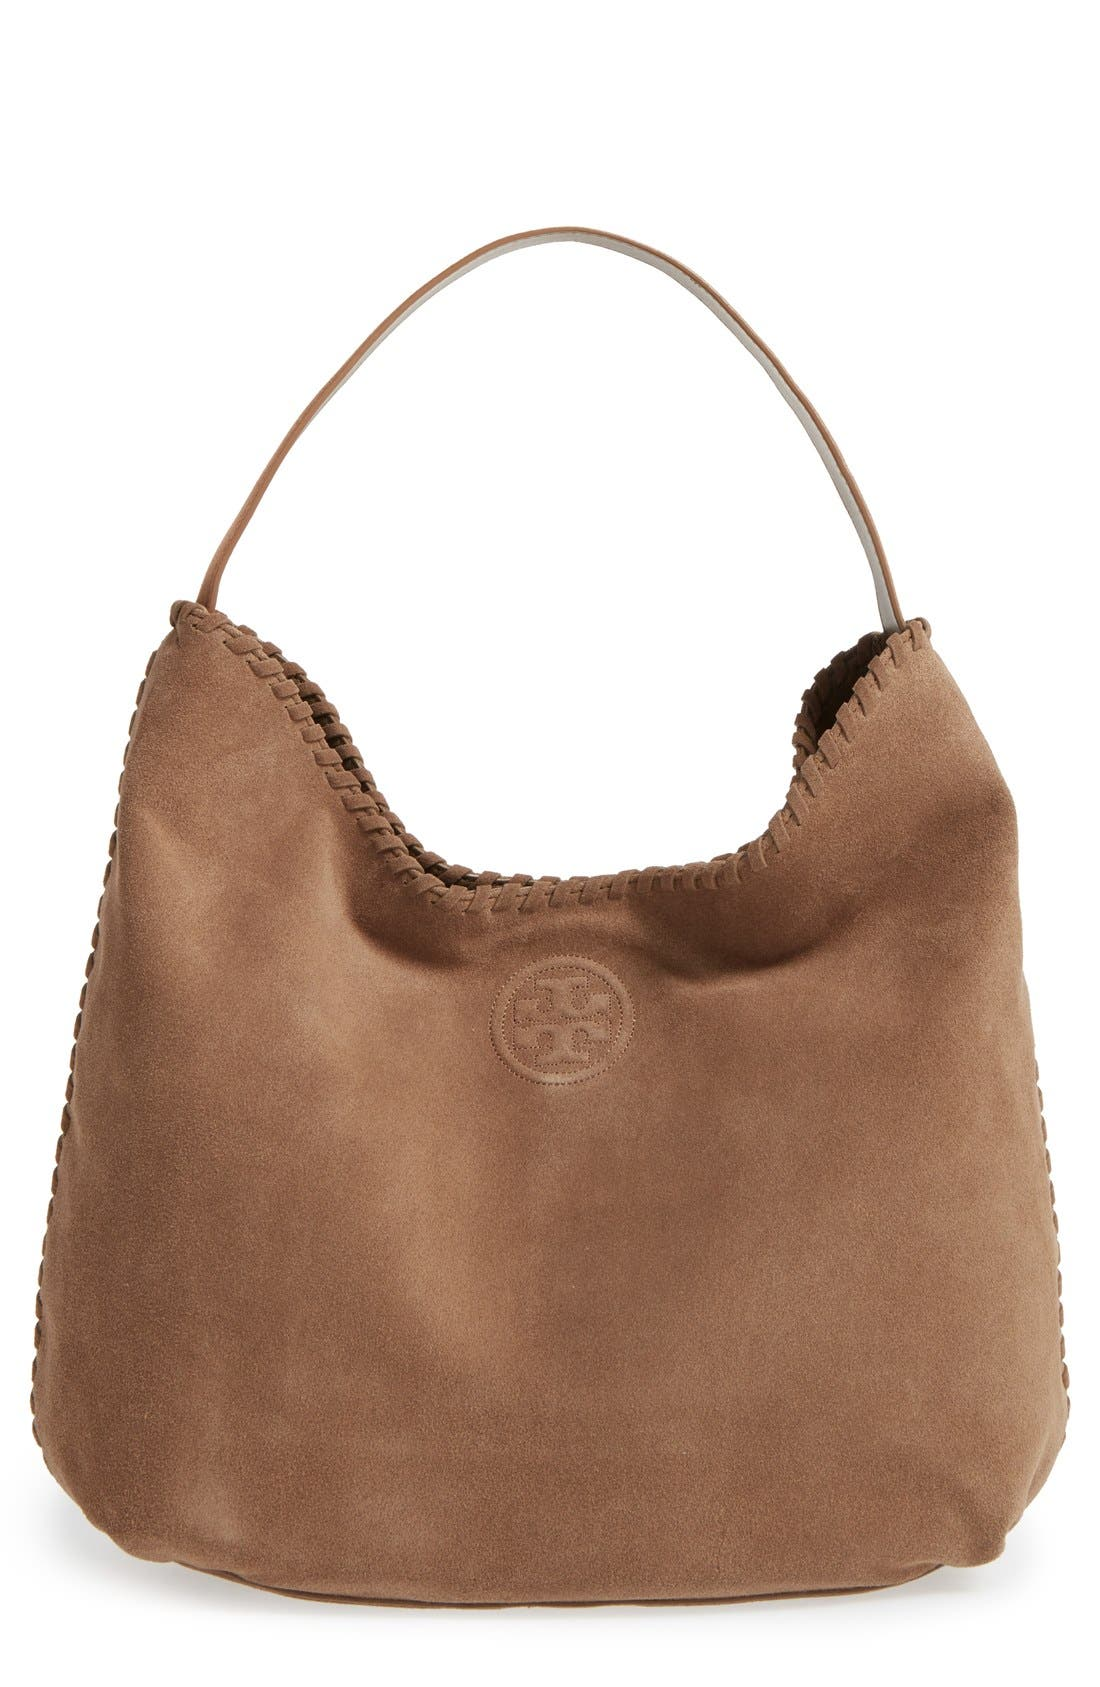 Alternate Image 1 Selected - Tory Burch 'Marion' Suede Hobo